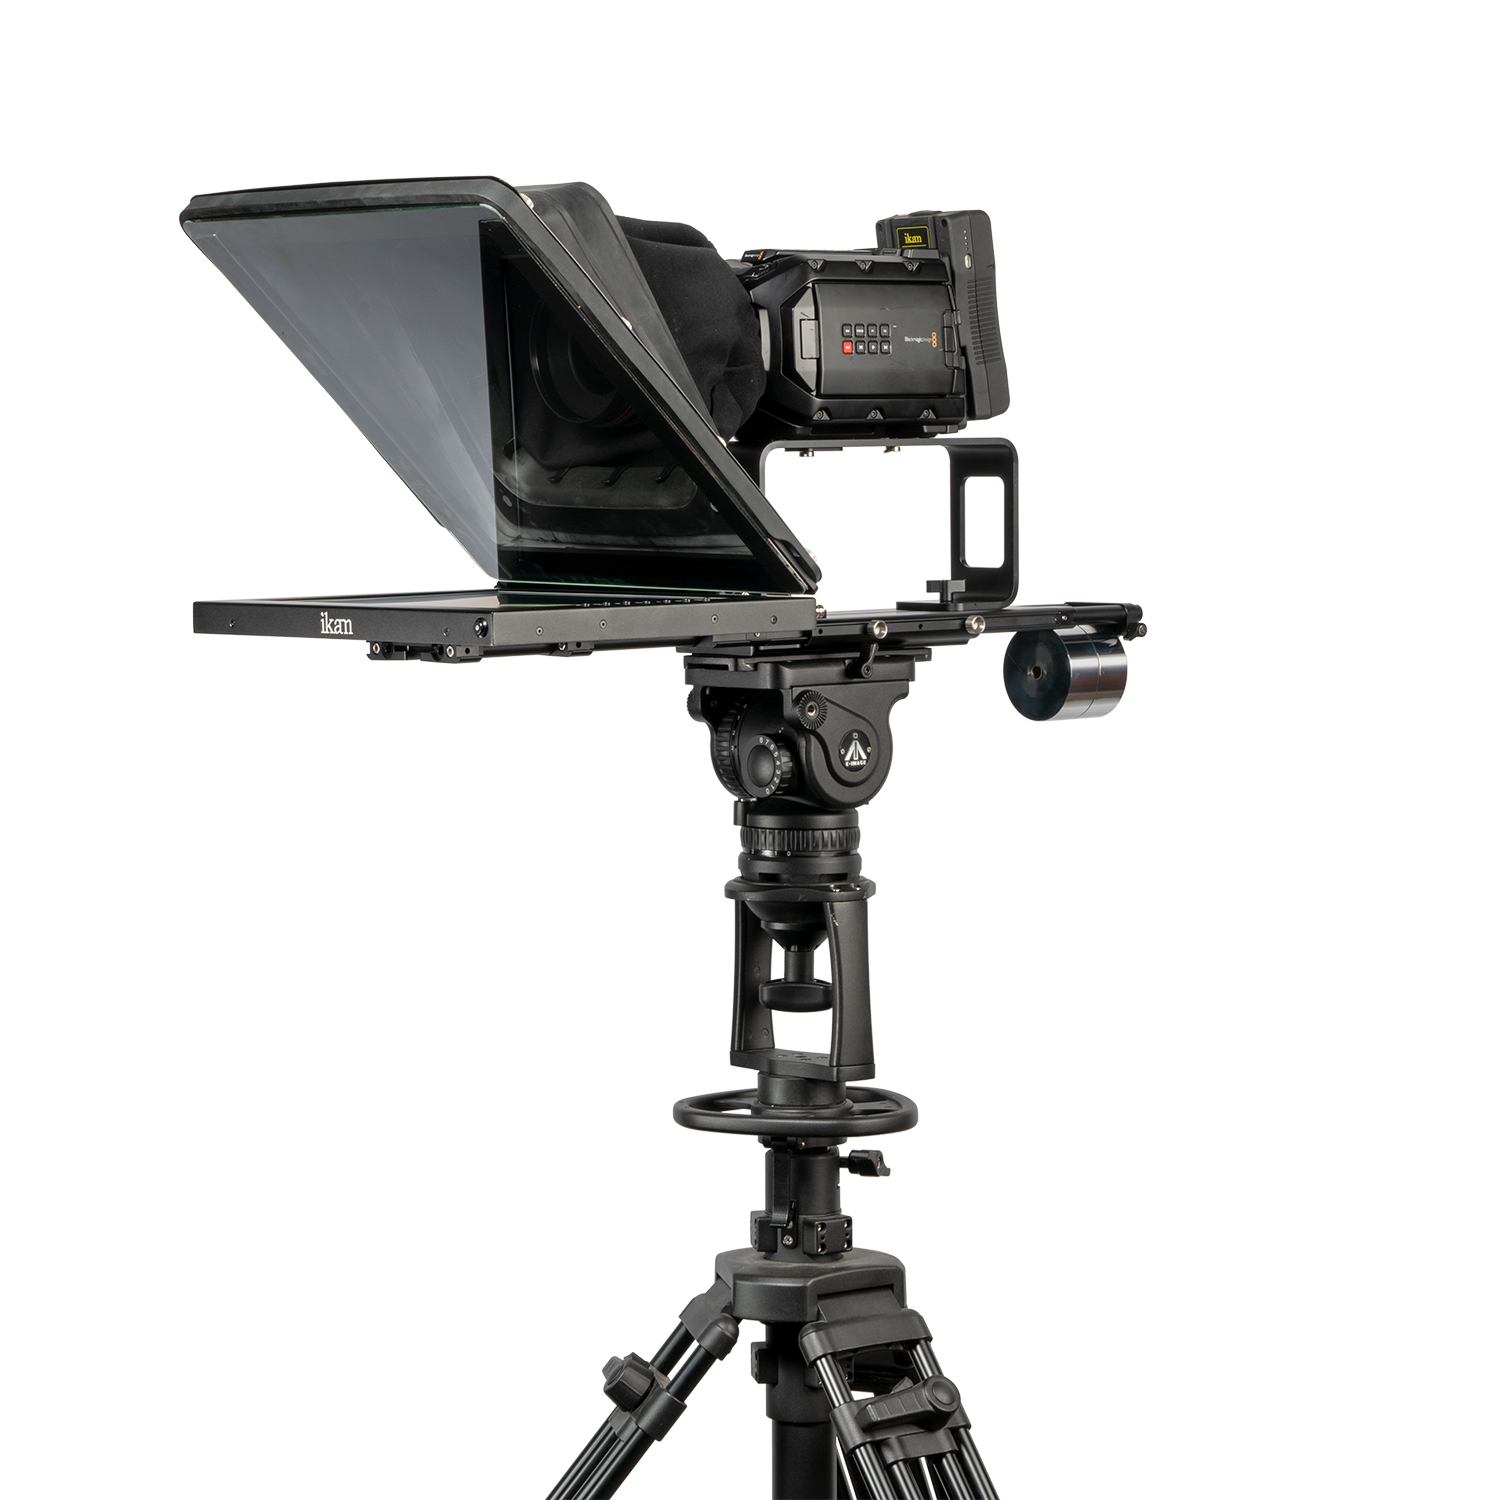 Ikan PROFESSIONAL 15″ HIGH BRIGHT BEAM SPLITTER TELEPROMPTER WITH 15″ TALENT MONITOR KIT Pro Video Ikan